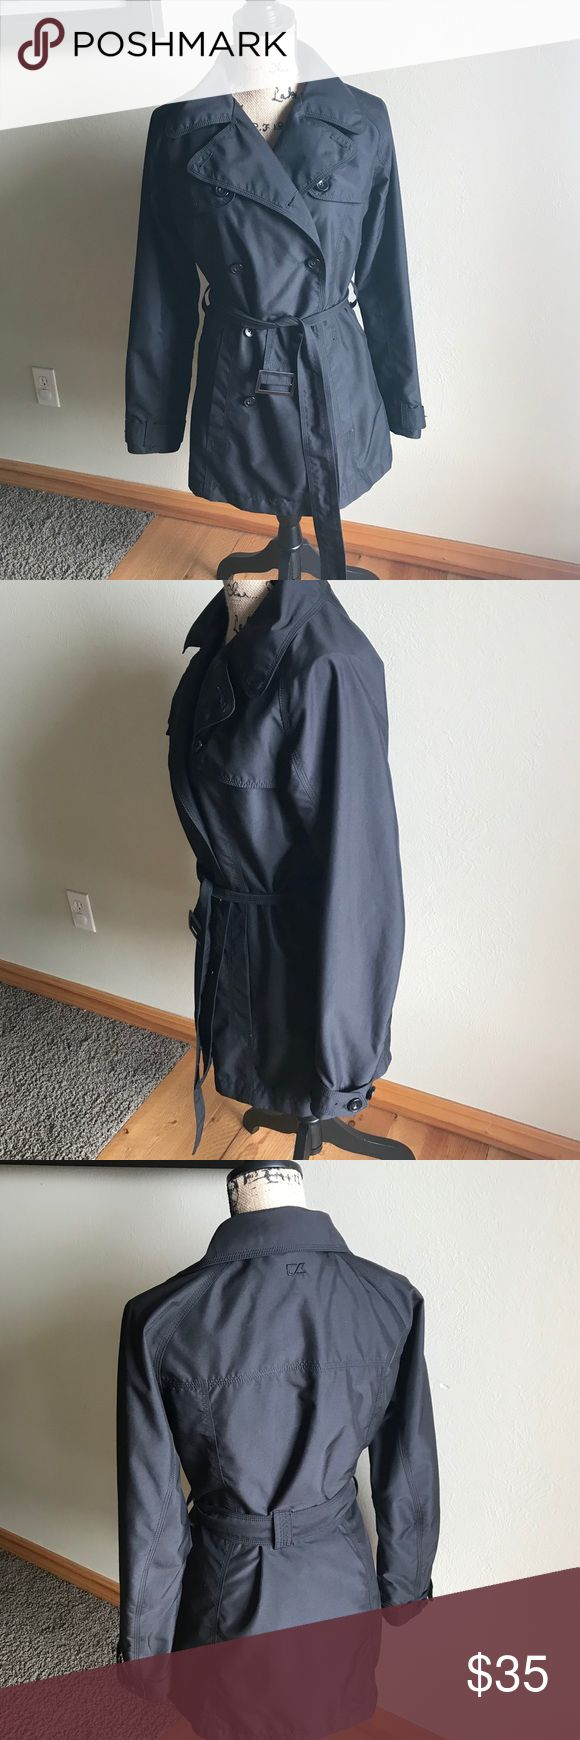 Cutter and Buck short trench coat In excellent condition